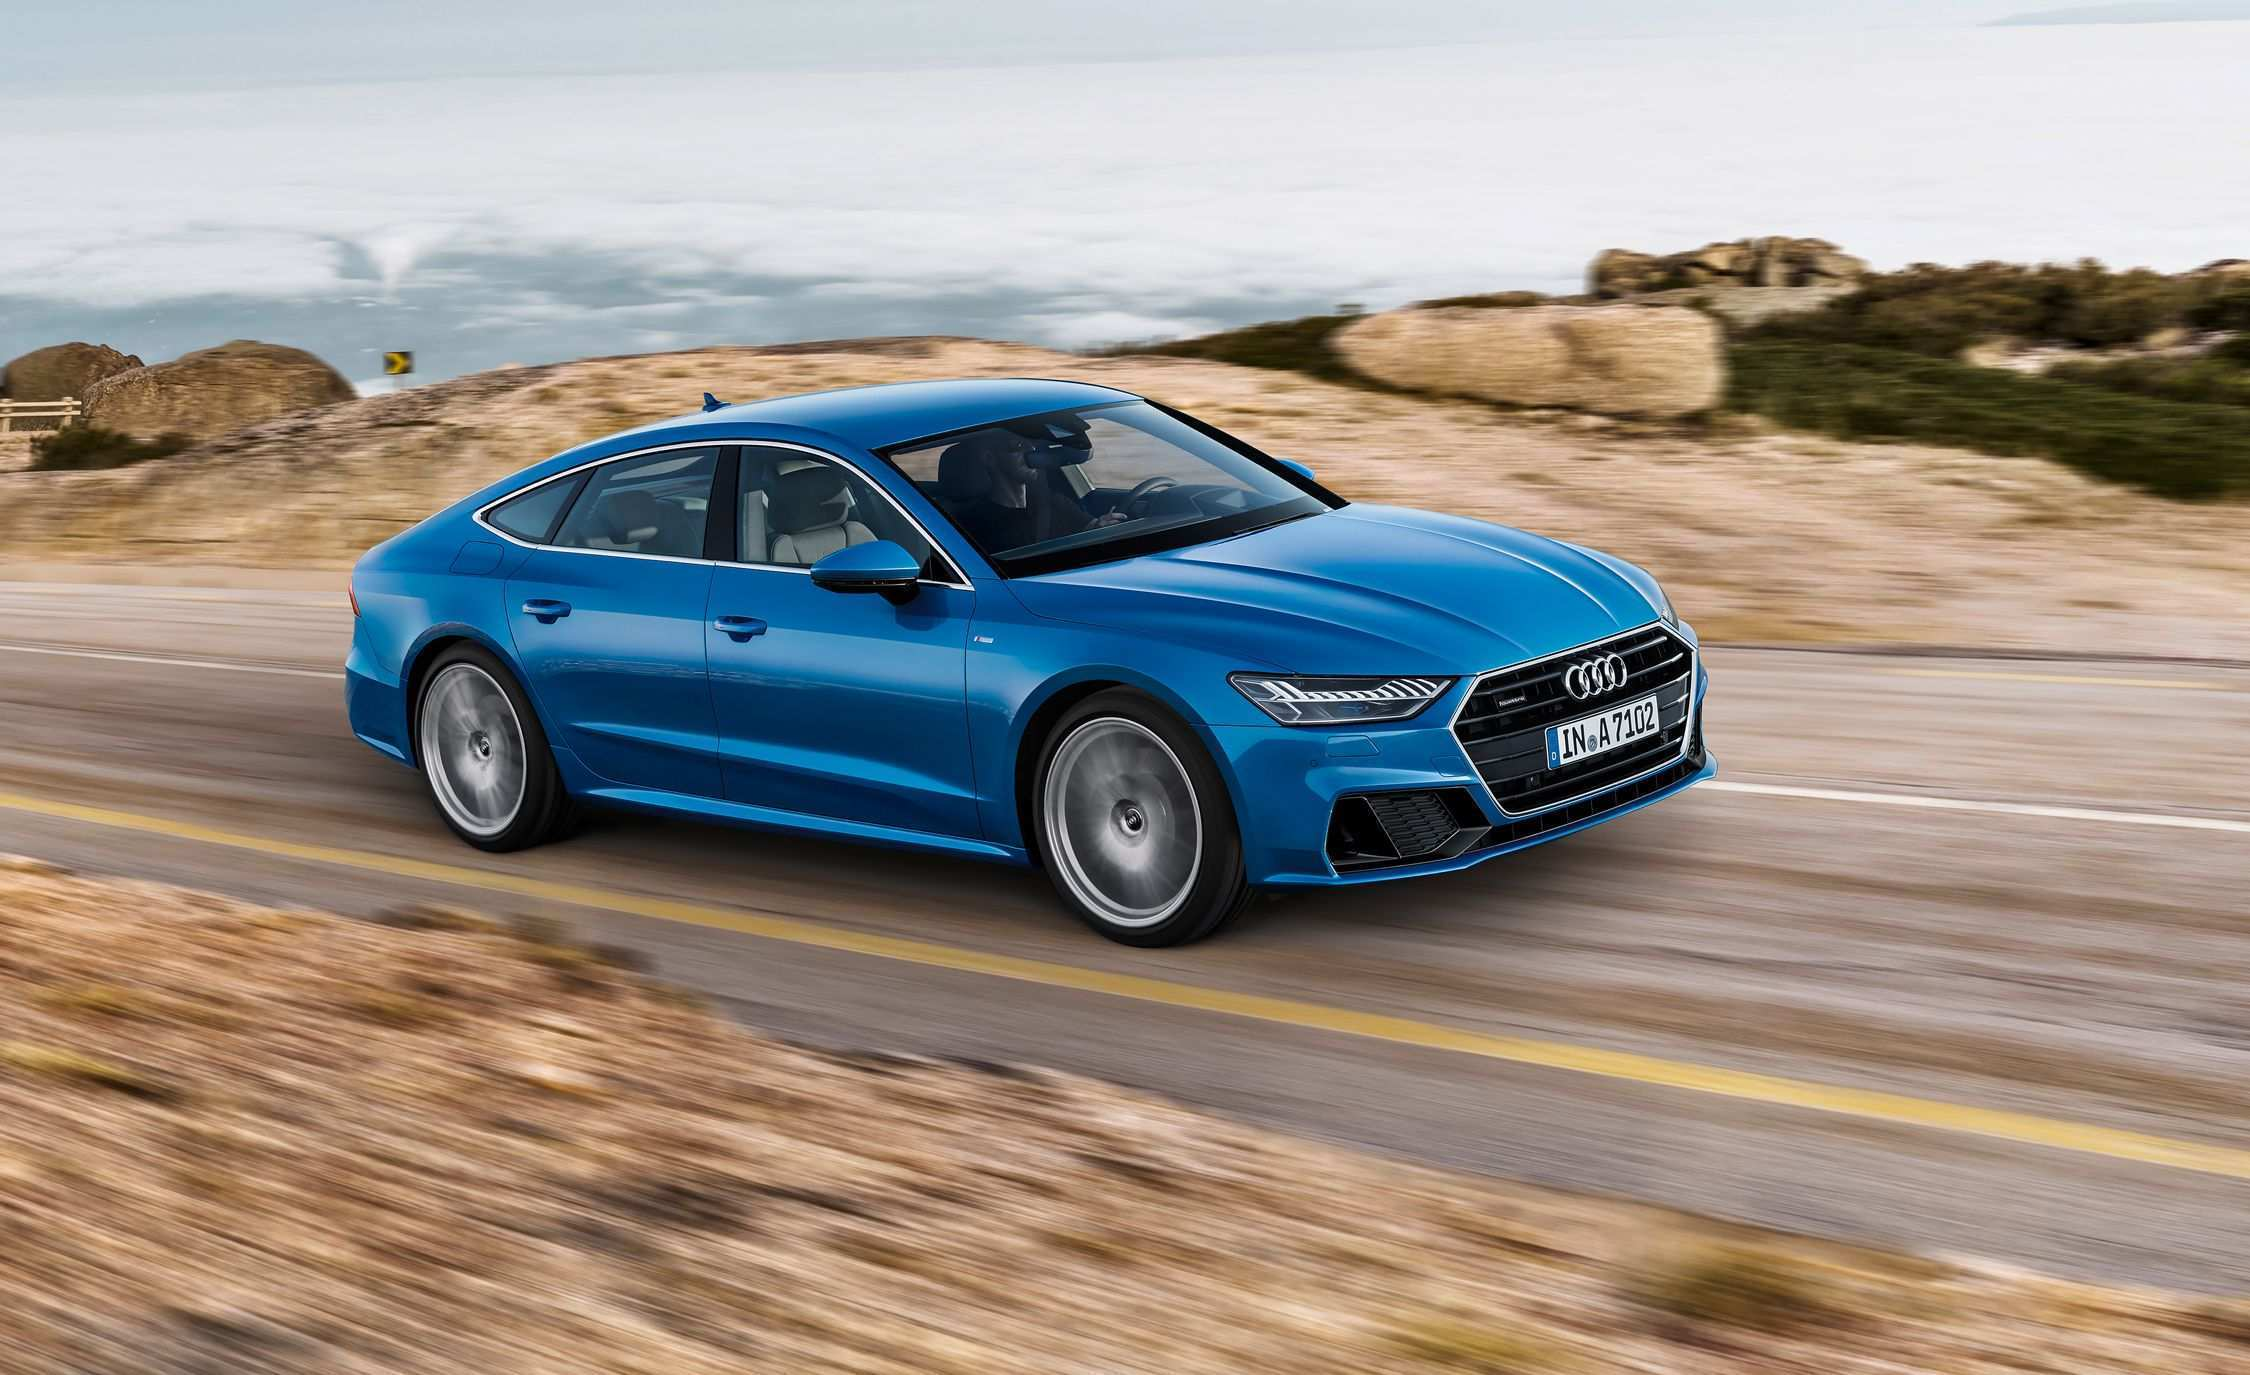 44 Great 2019 Audi A7 Dimensions Pricing by 2019 Audi A7 Dimensions